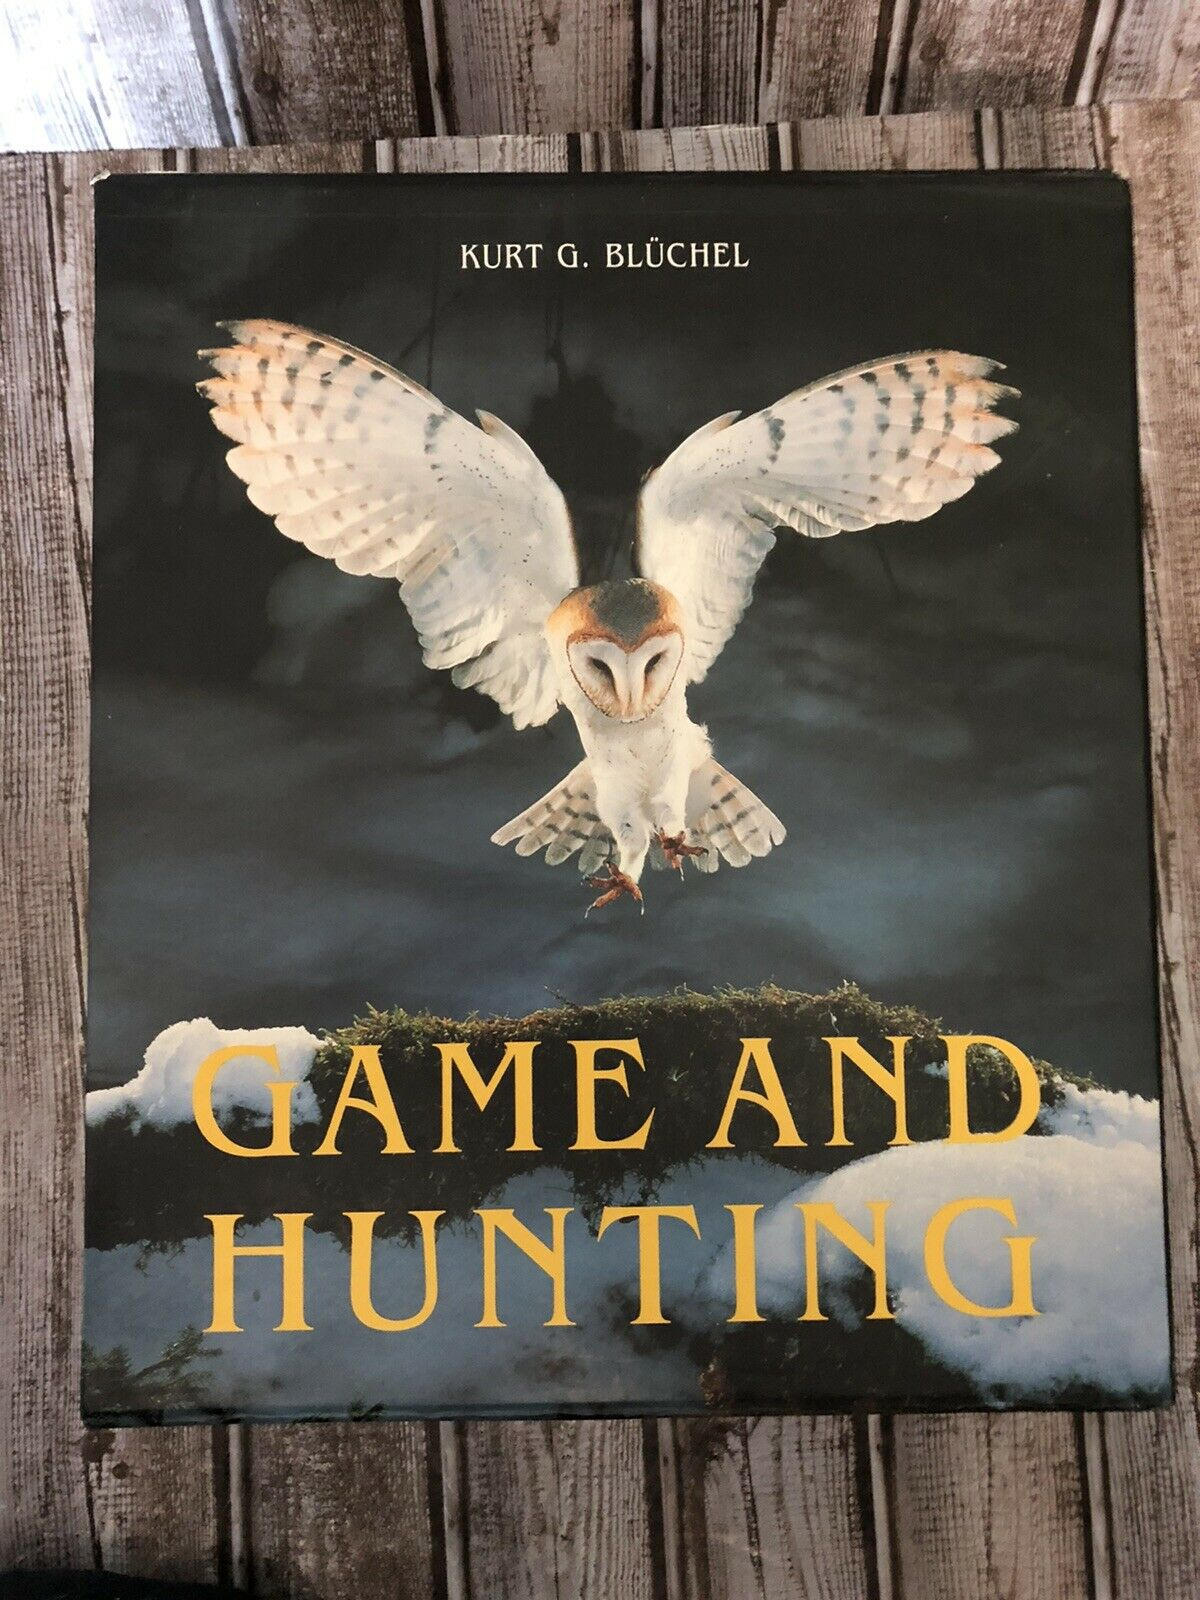 for sale online Game and Hunting by Kurt G Bluchel 1997, Hardcover